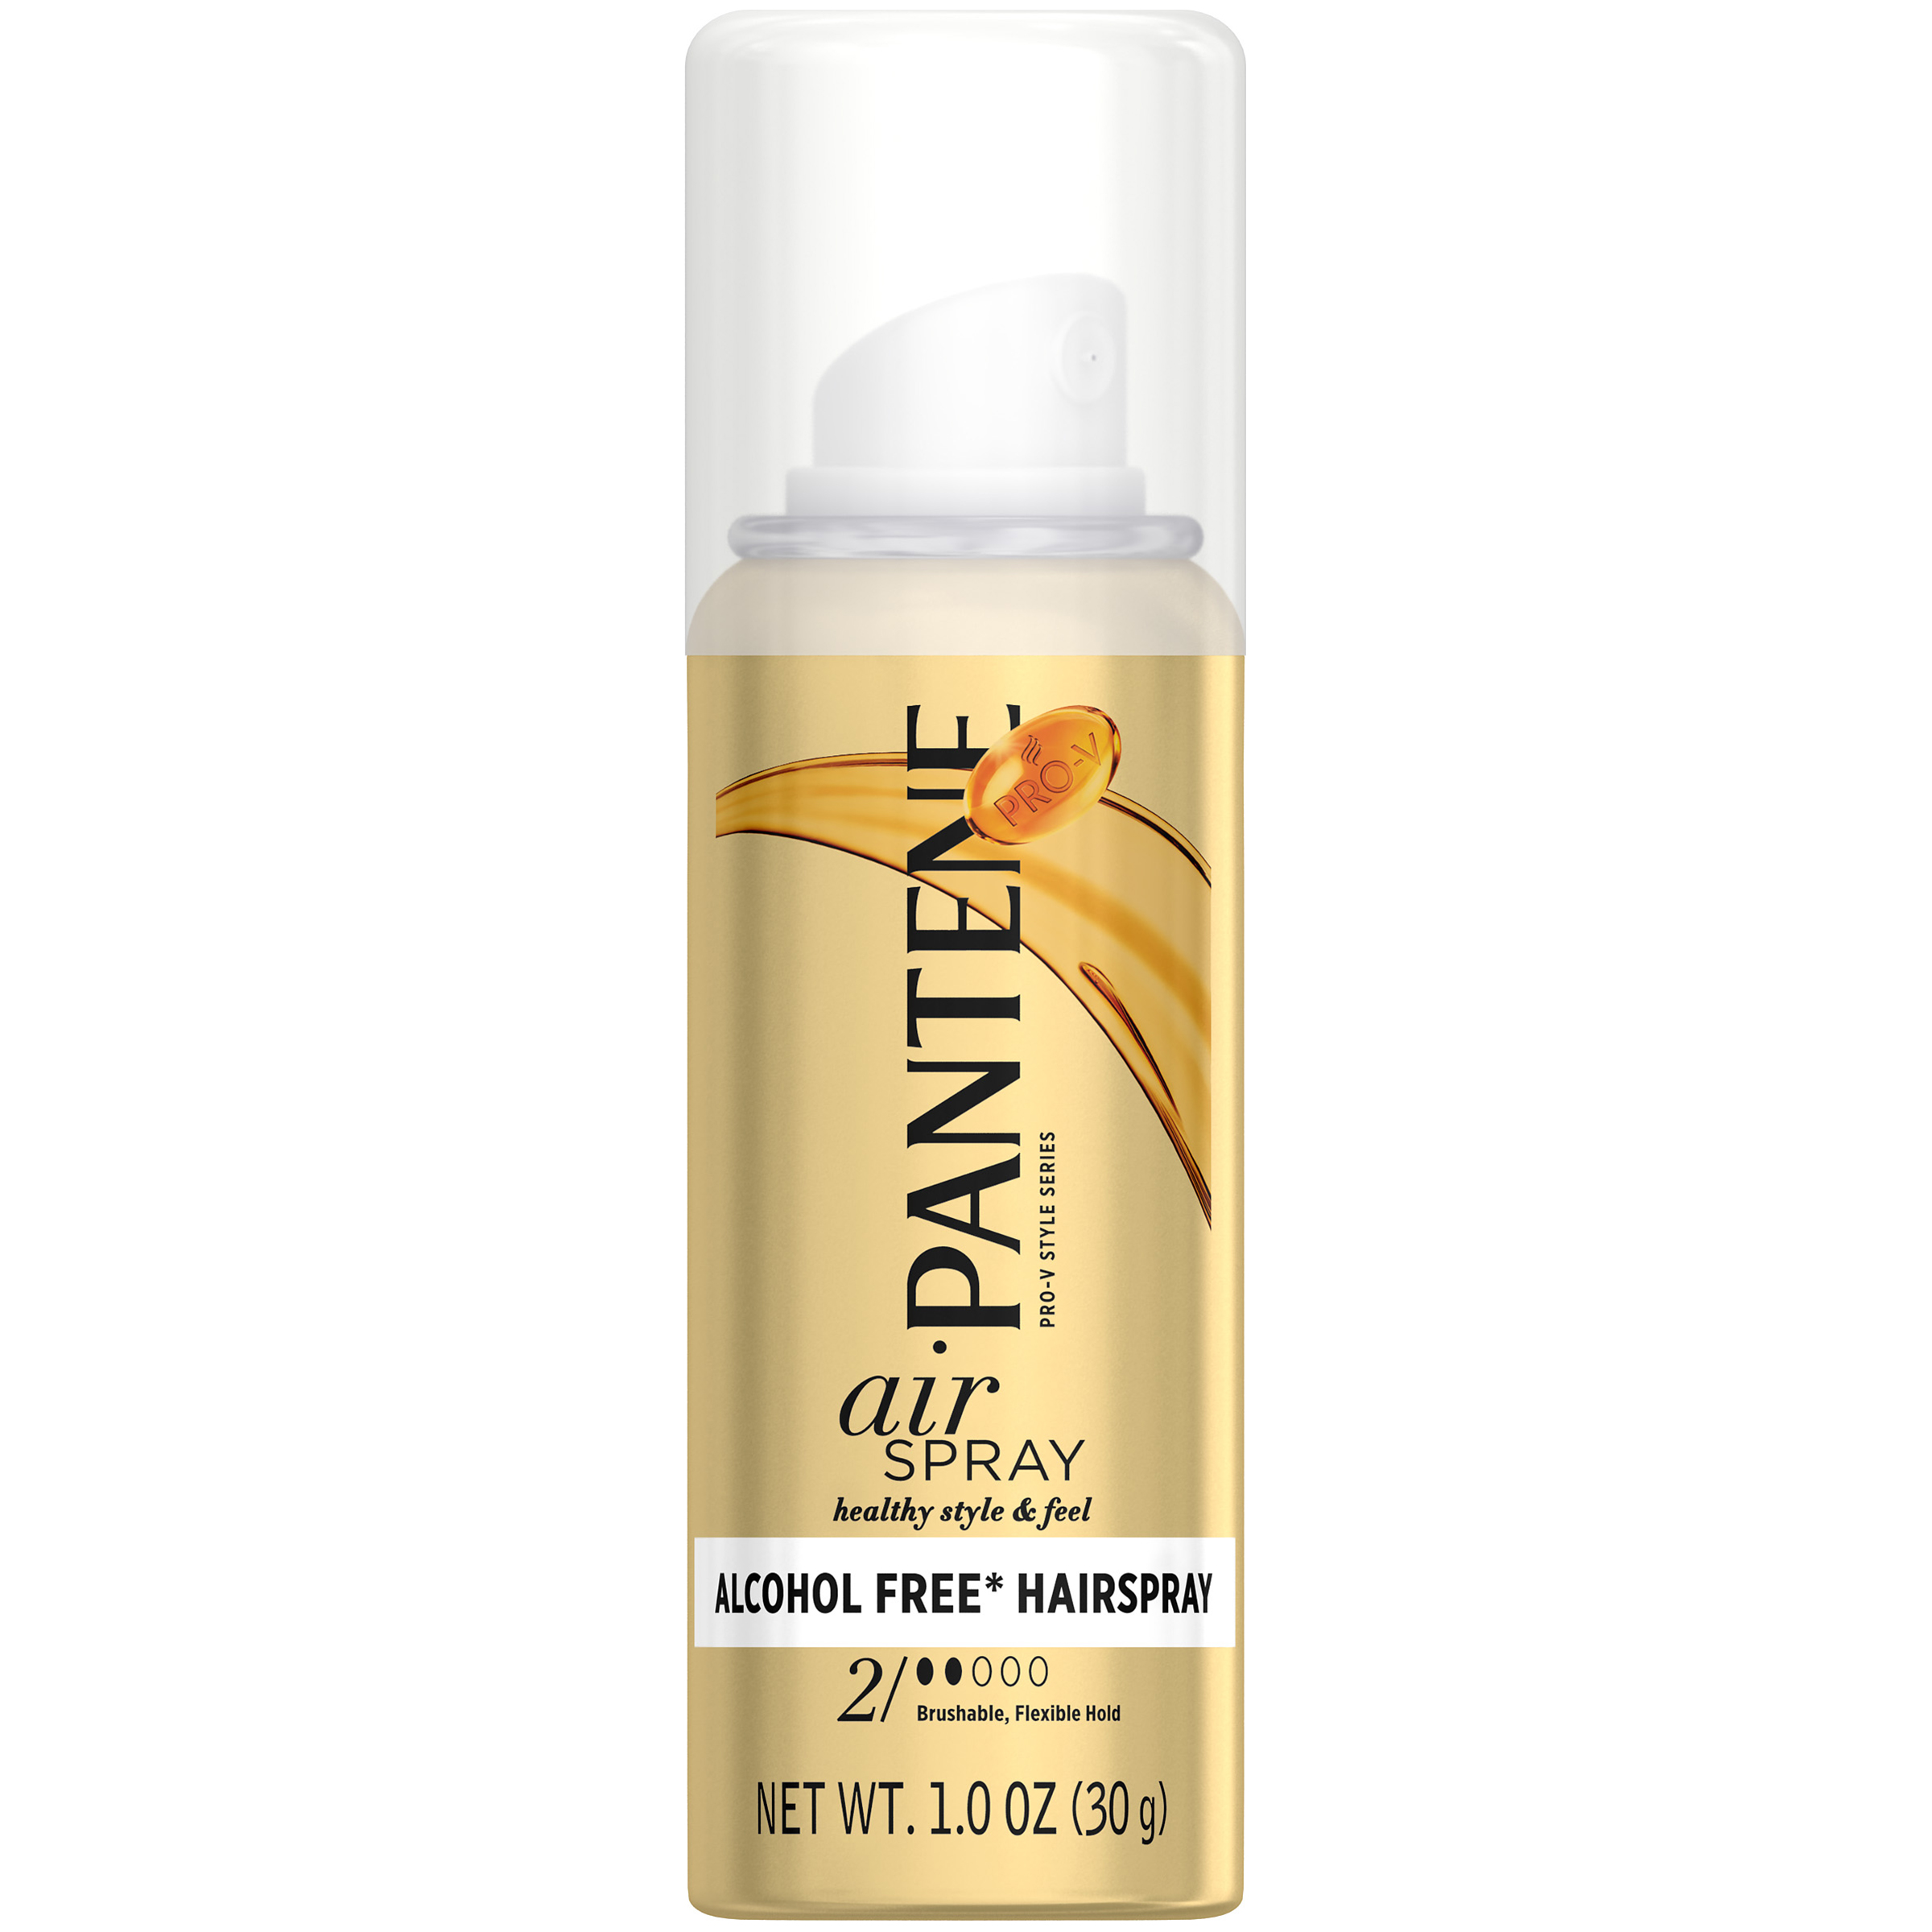 Styling Pantene Pro-V Airspray Flexible Hold Hair Spray 1 oz (trial size)